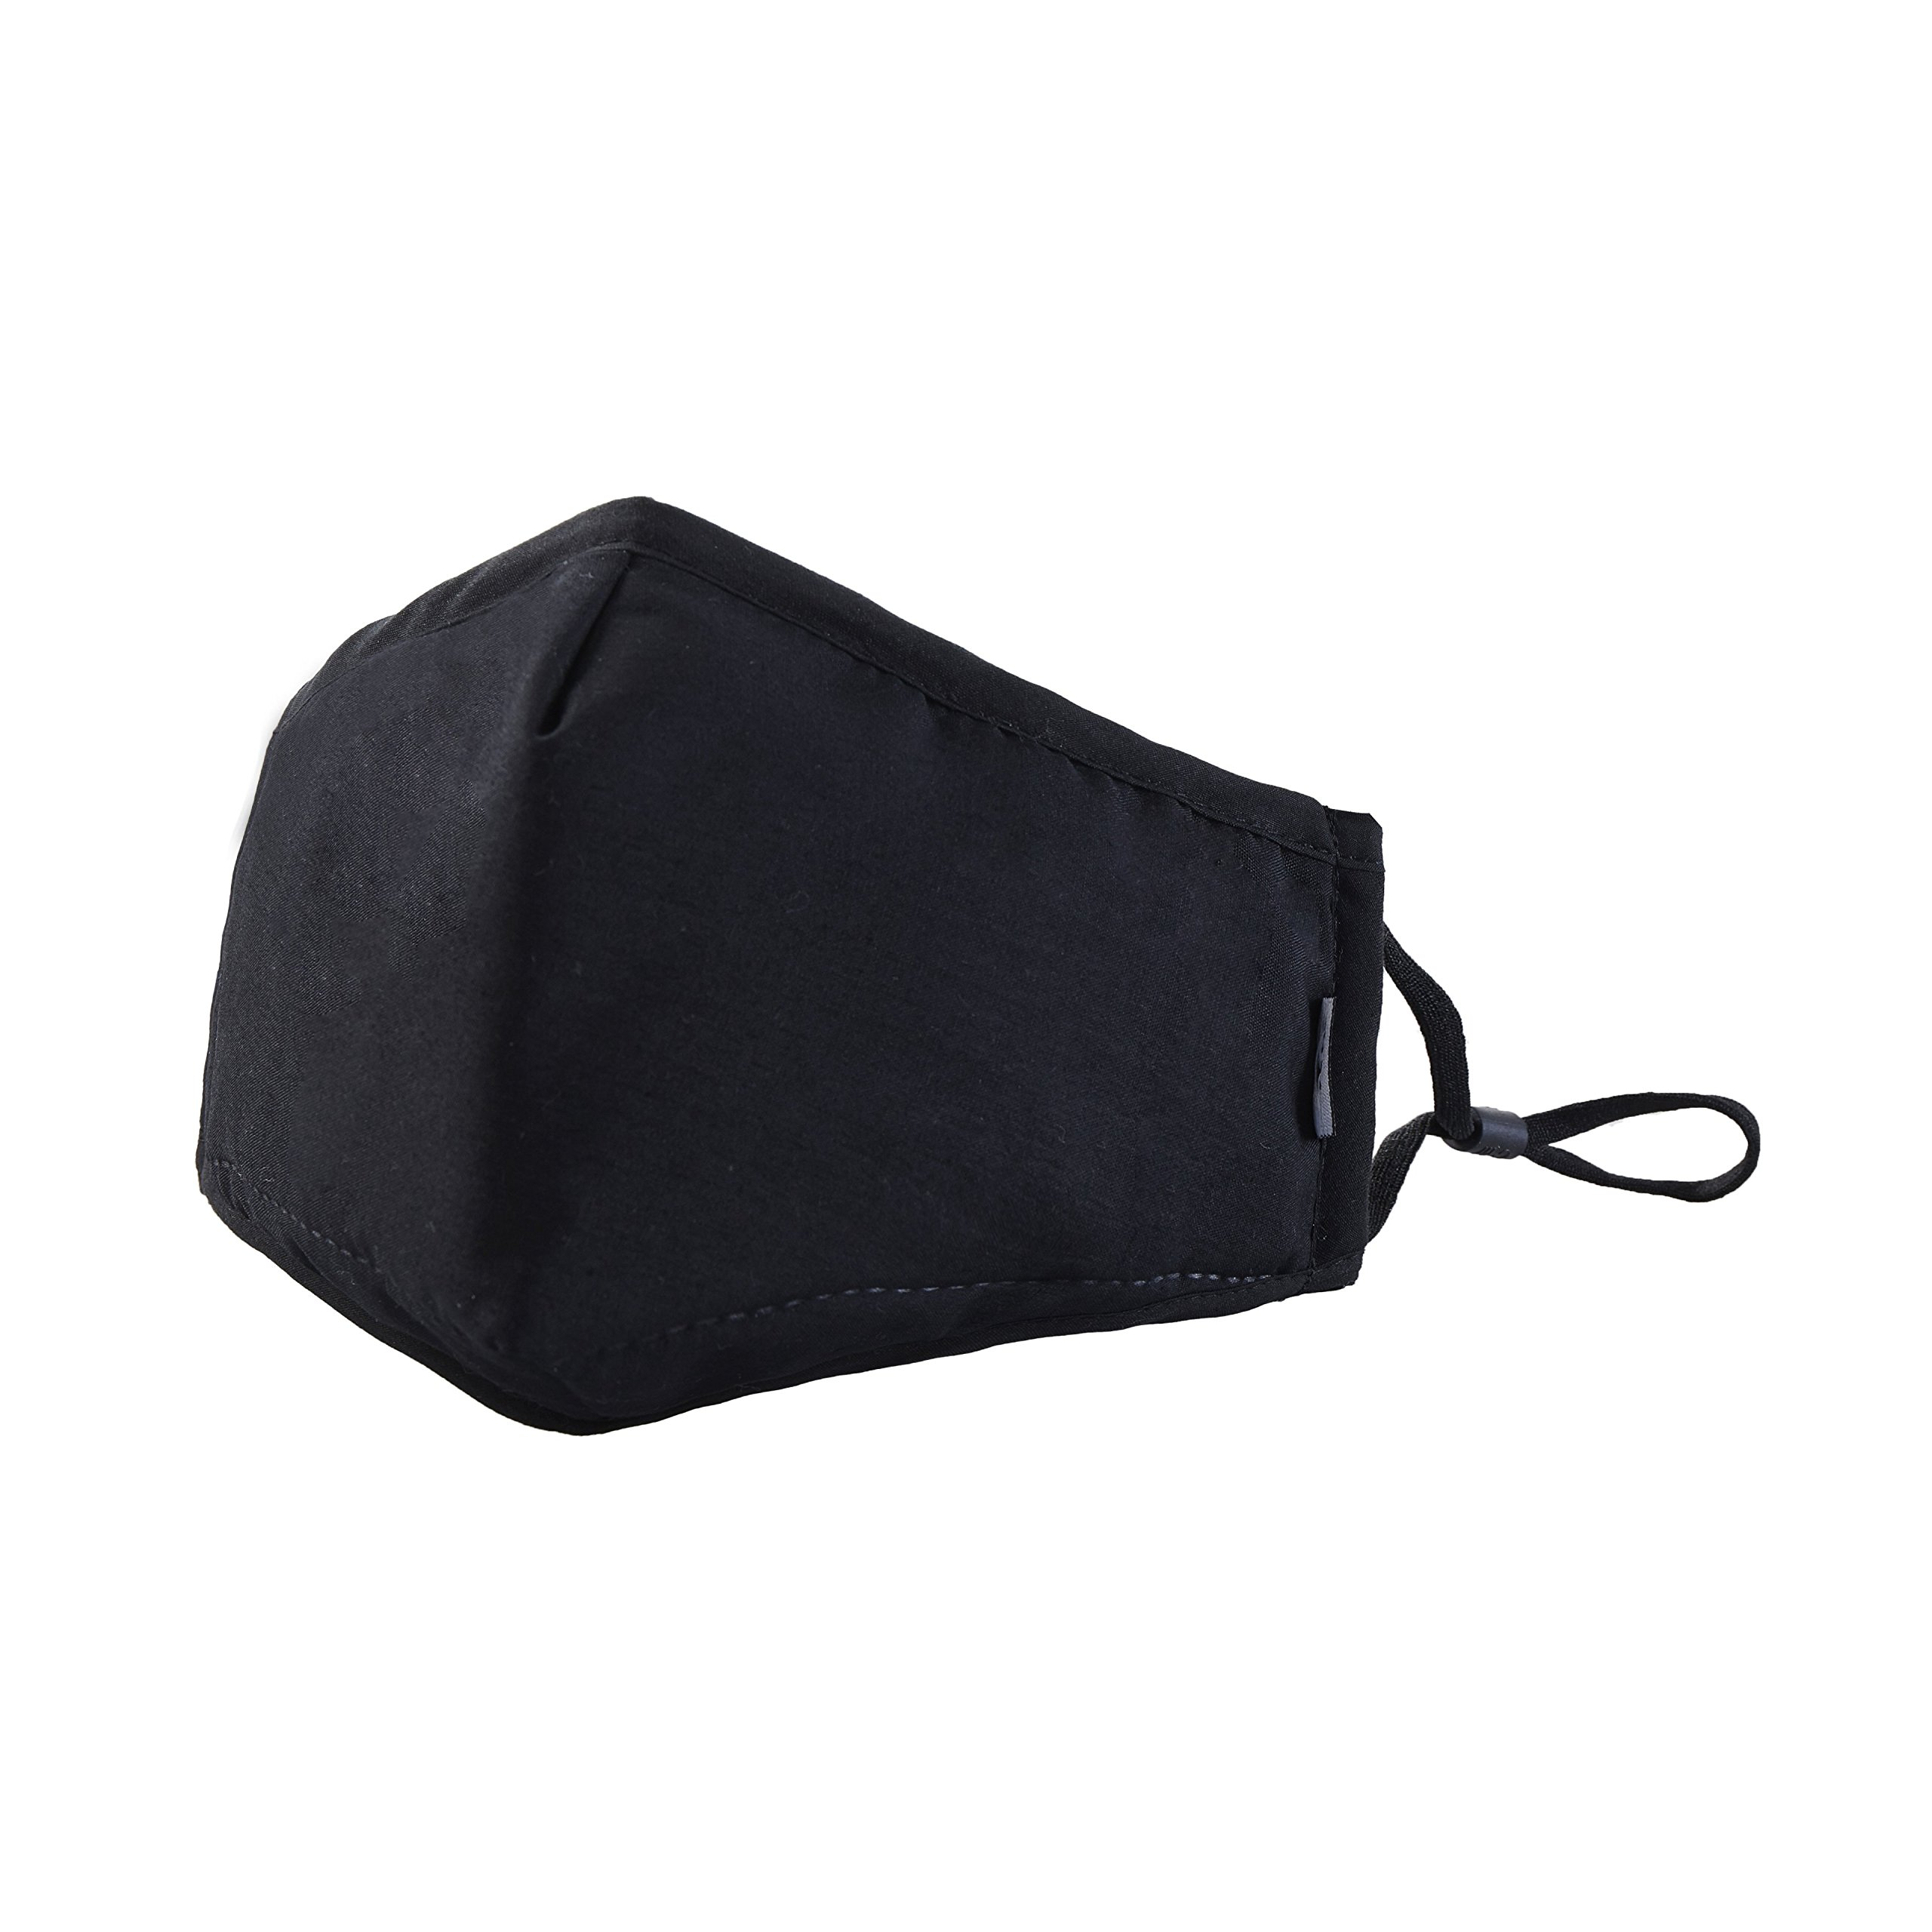 Dust mask Non-Toxic mask, Breathable mask Mouth mask Fashion PM2.5 Outdoor mask Anti-Pollen mask (Model:A-1) (black)